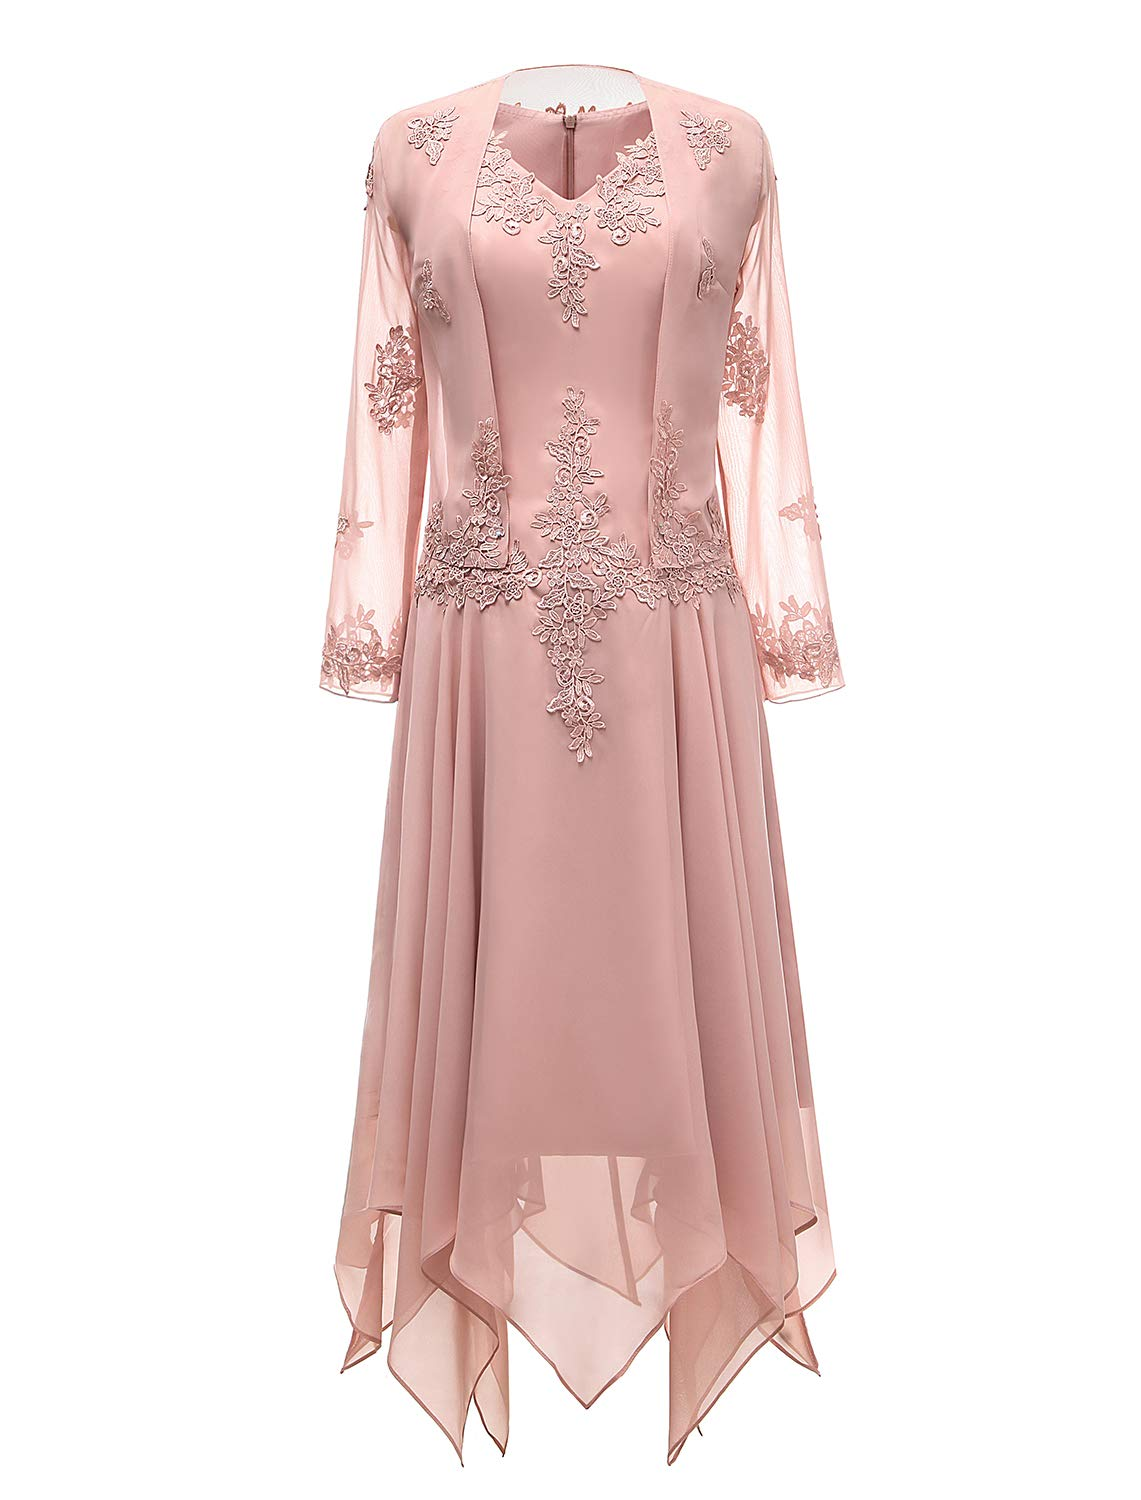 Mother Of The Bride Dresses - V-Neck Chiffon Tea Length Mother Of The Bride Dress Long Sleeves Lace Formal Evening Gowns With Jacket